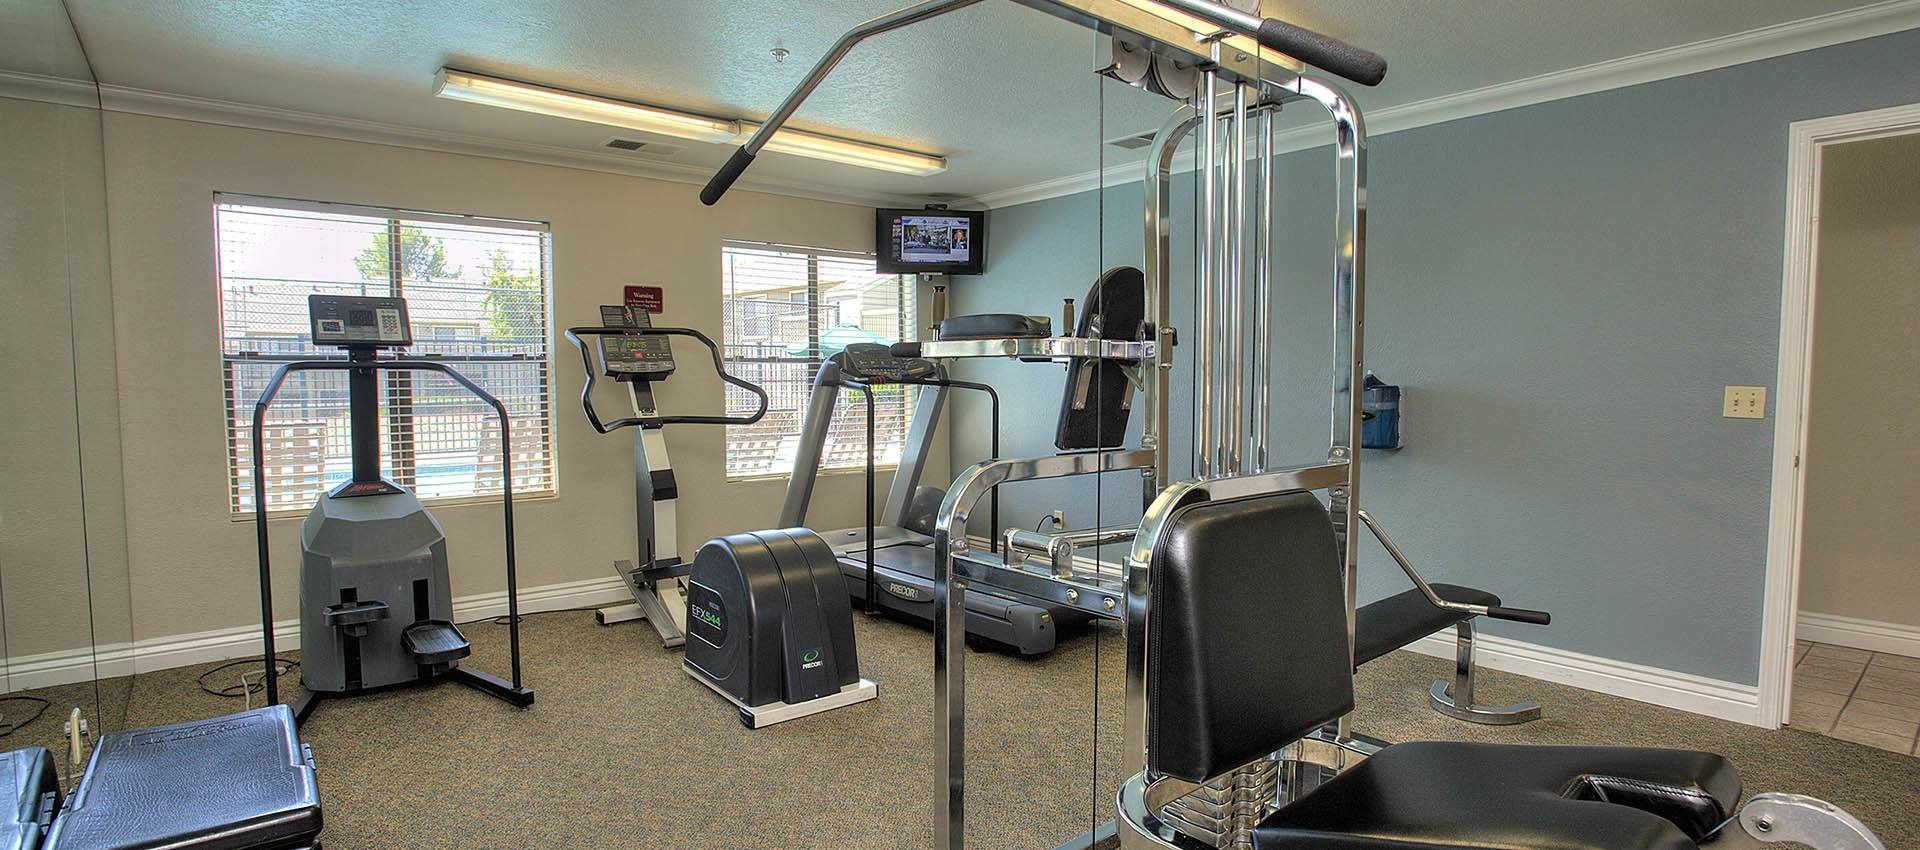 Fitness center at Sandpiper Village Apartment Homes